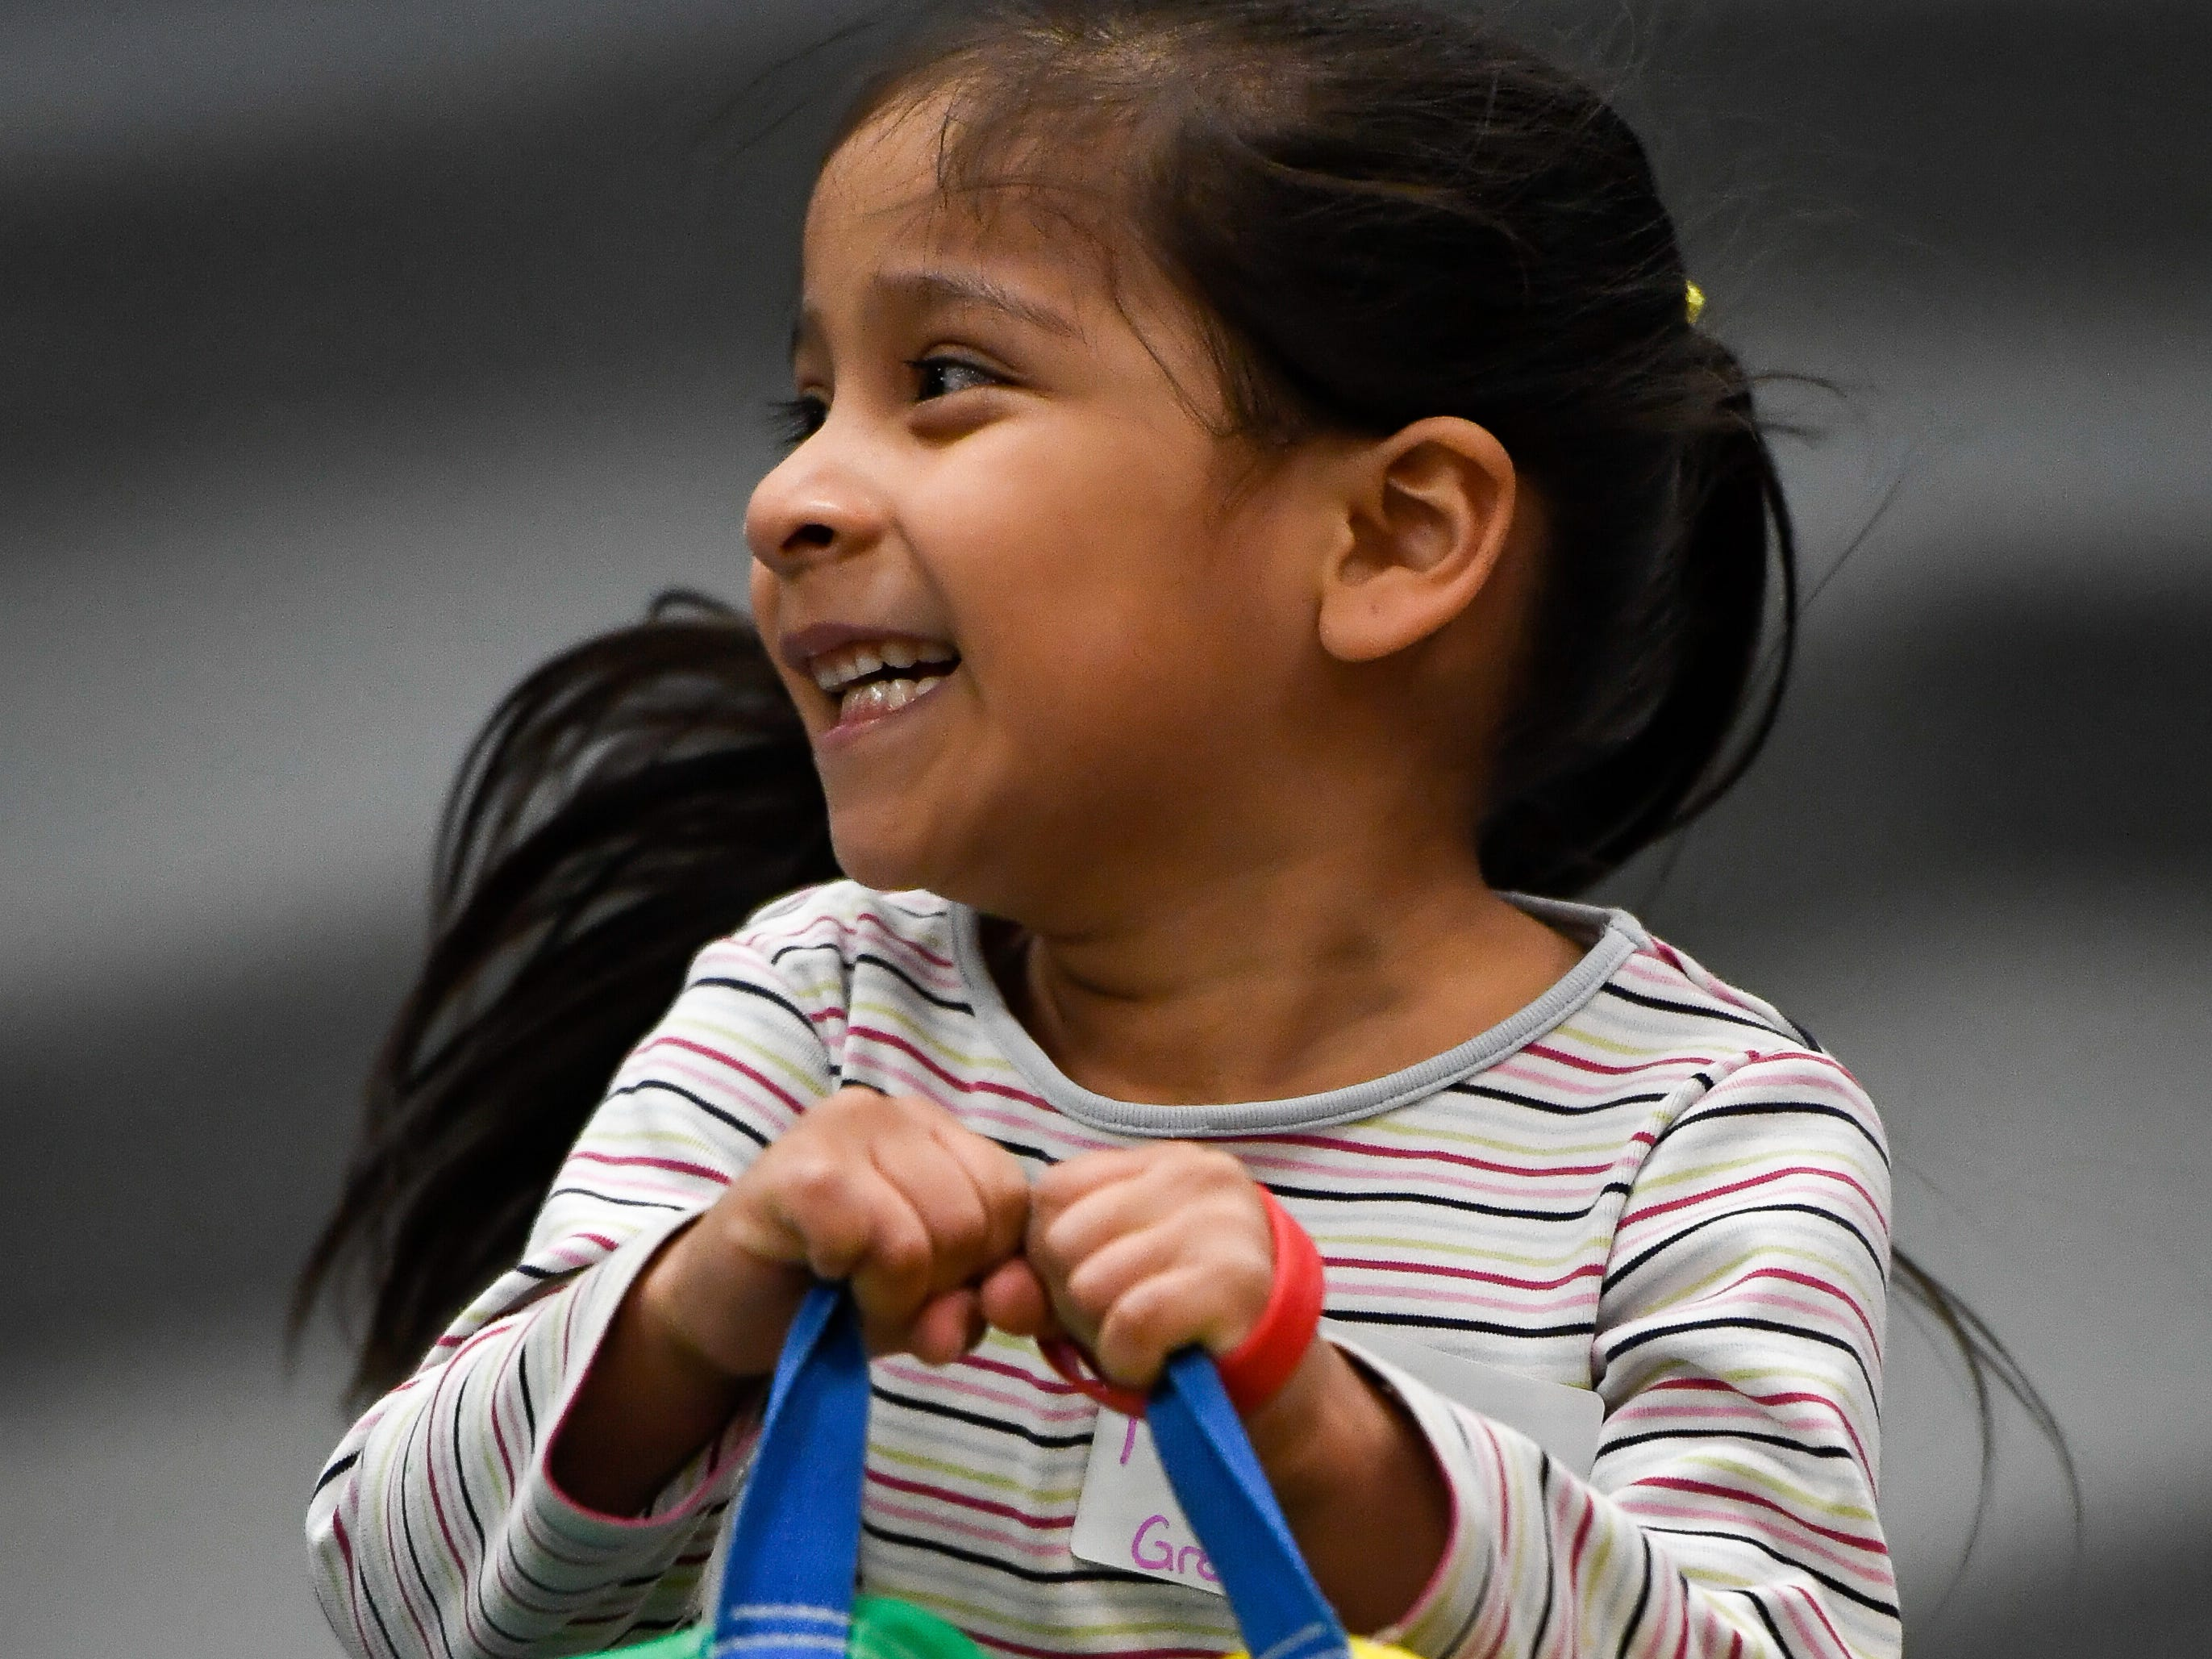 Marissa Sanchez, 4 years-old, does her part holding up the side of the parachute during the Special Olympics Unified Champion School Young Athlete program at Culver Early Learning Center Friday, March 22, 2019.